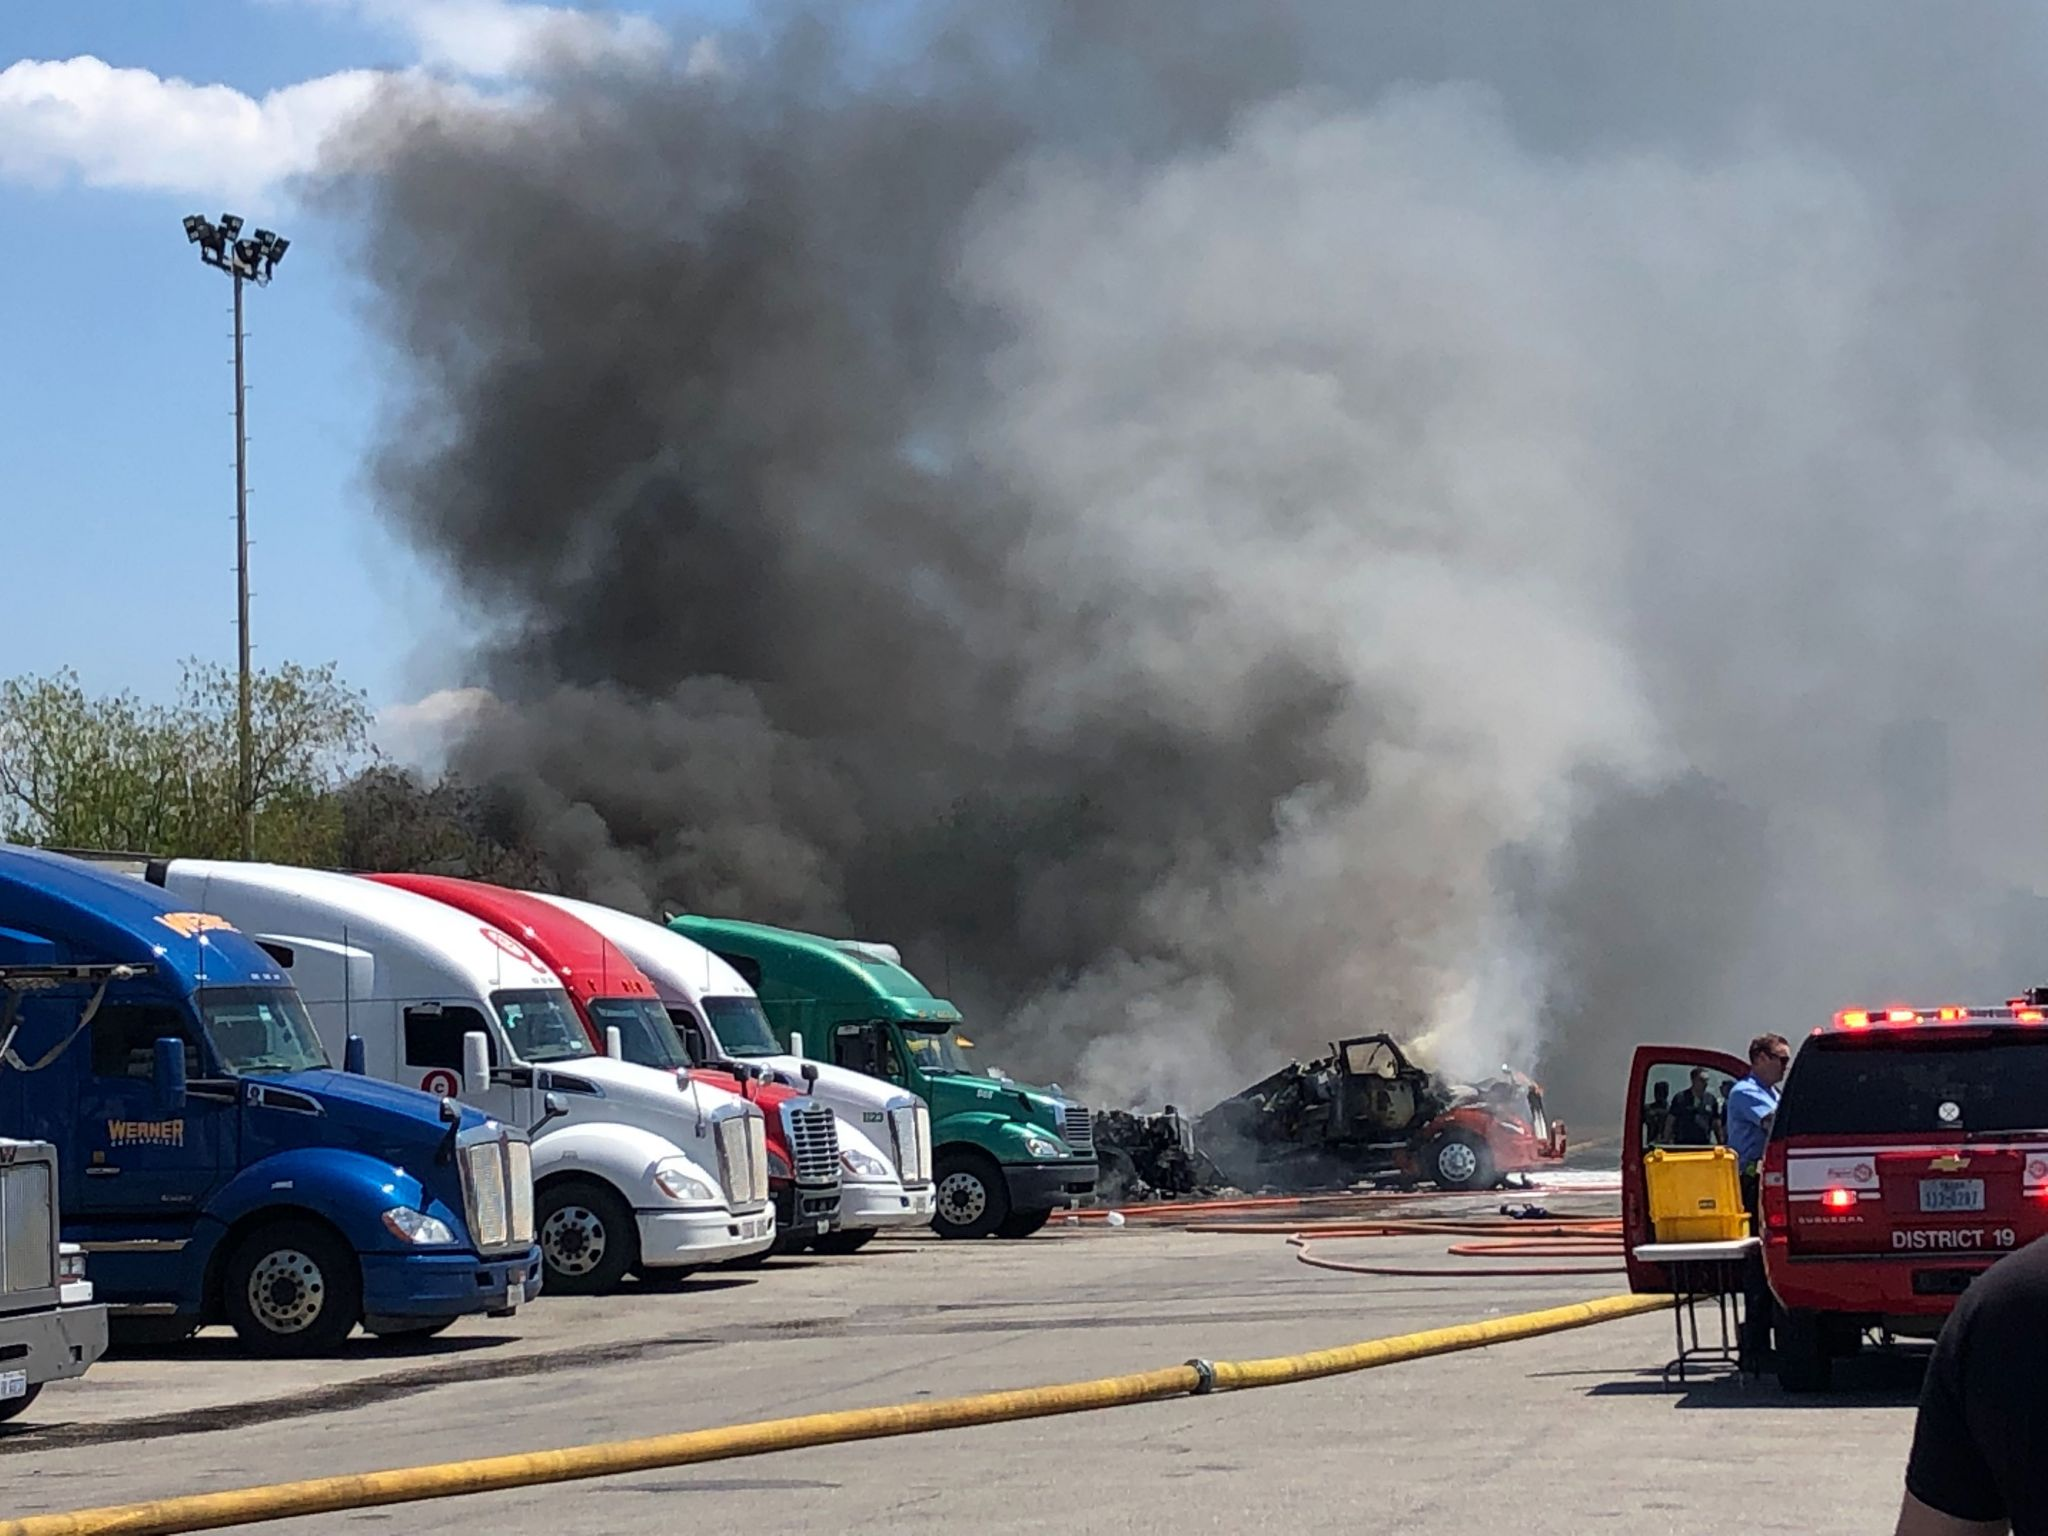 Several 18-wheelers on fire at North Freeway truck stop